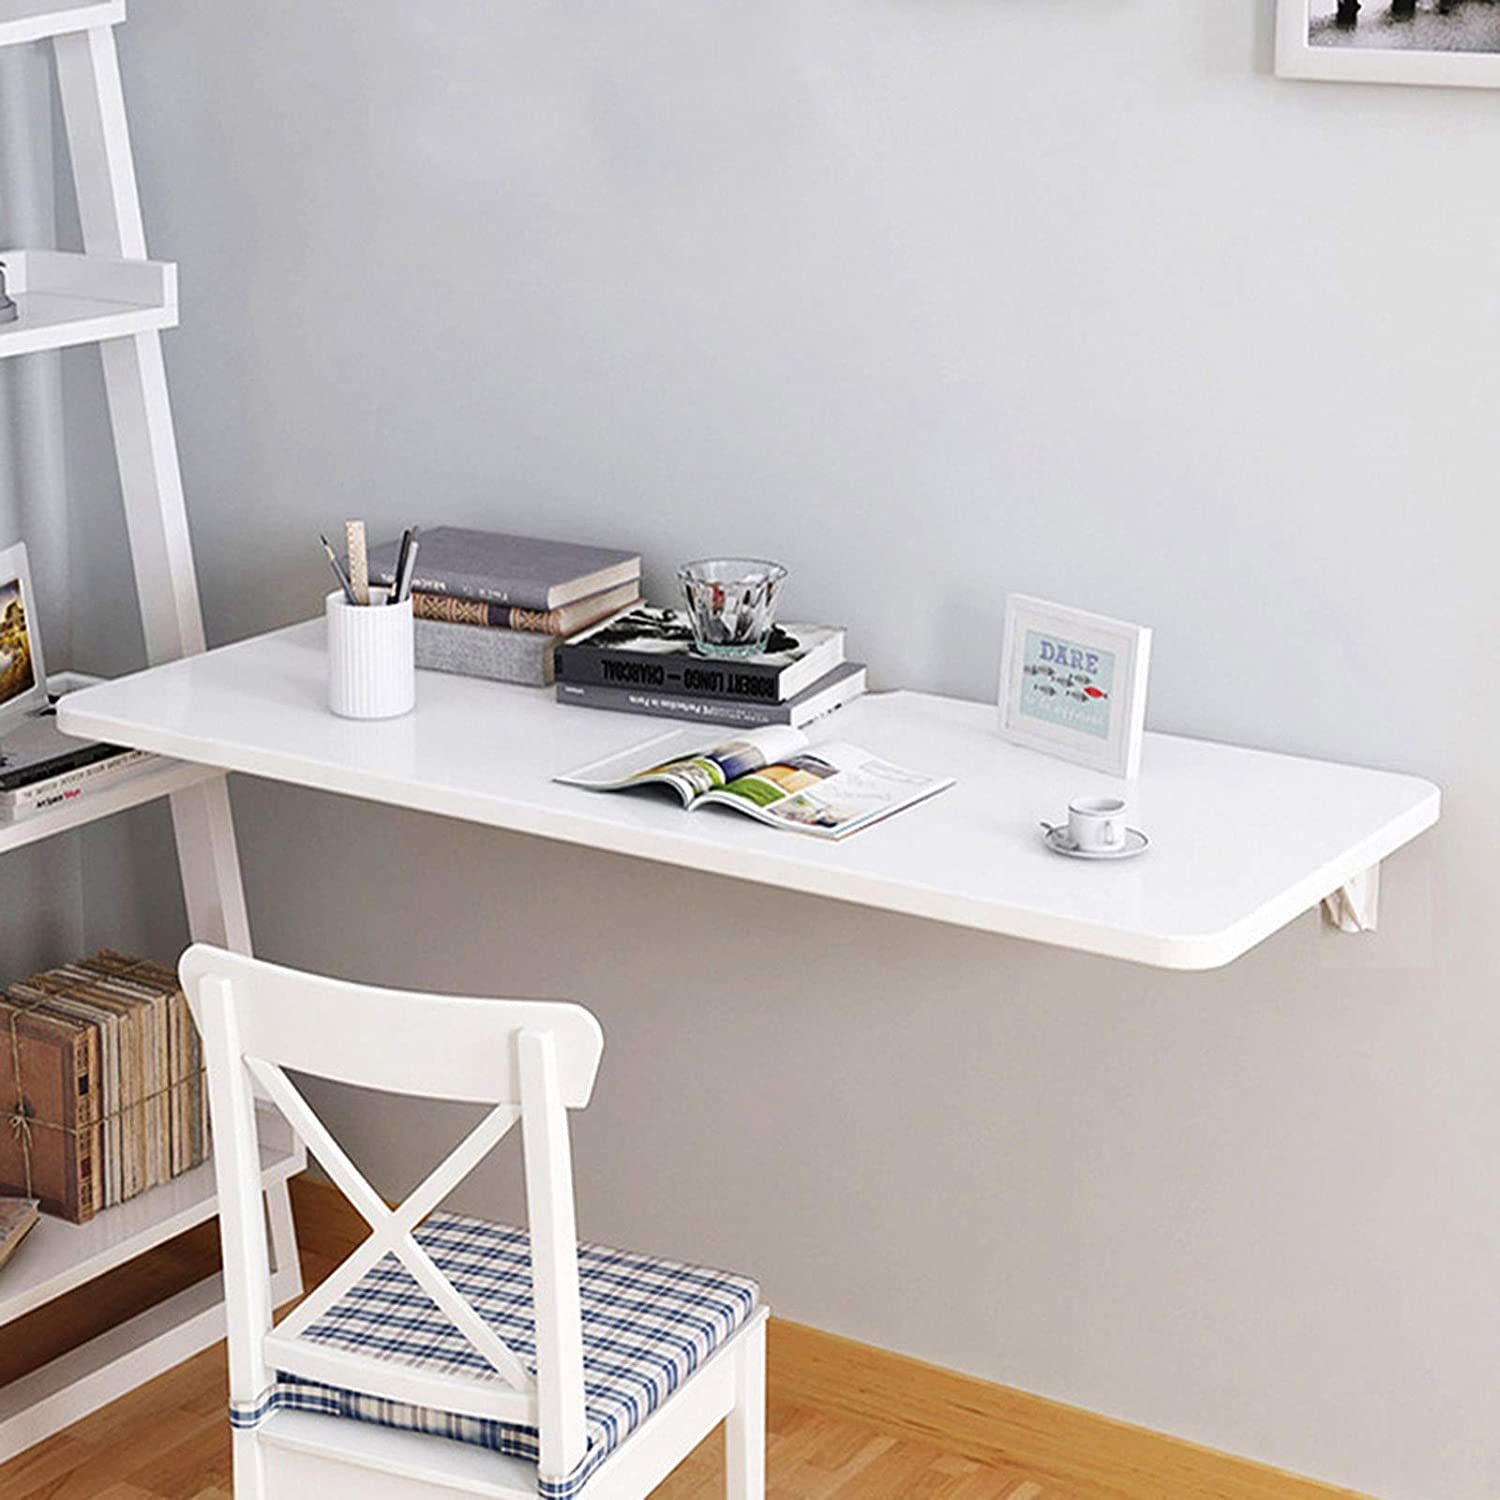 LIUD Small Popular popular Outlet ☆ Free Shipping Tables for Spaces Folding Wall Desk White Mount